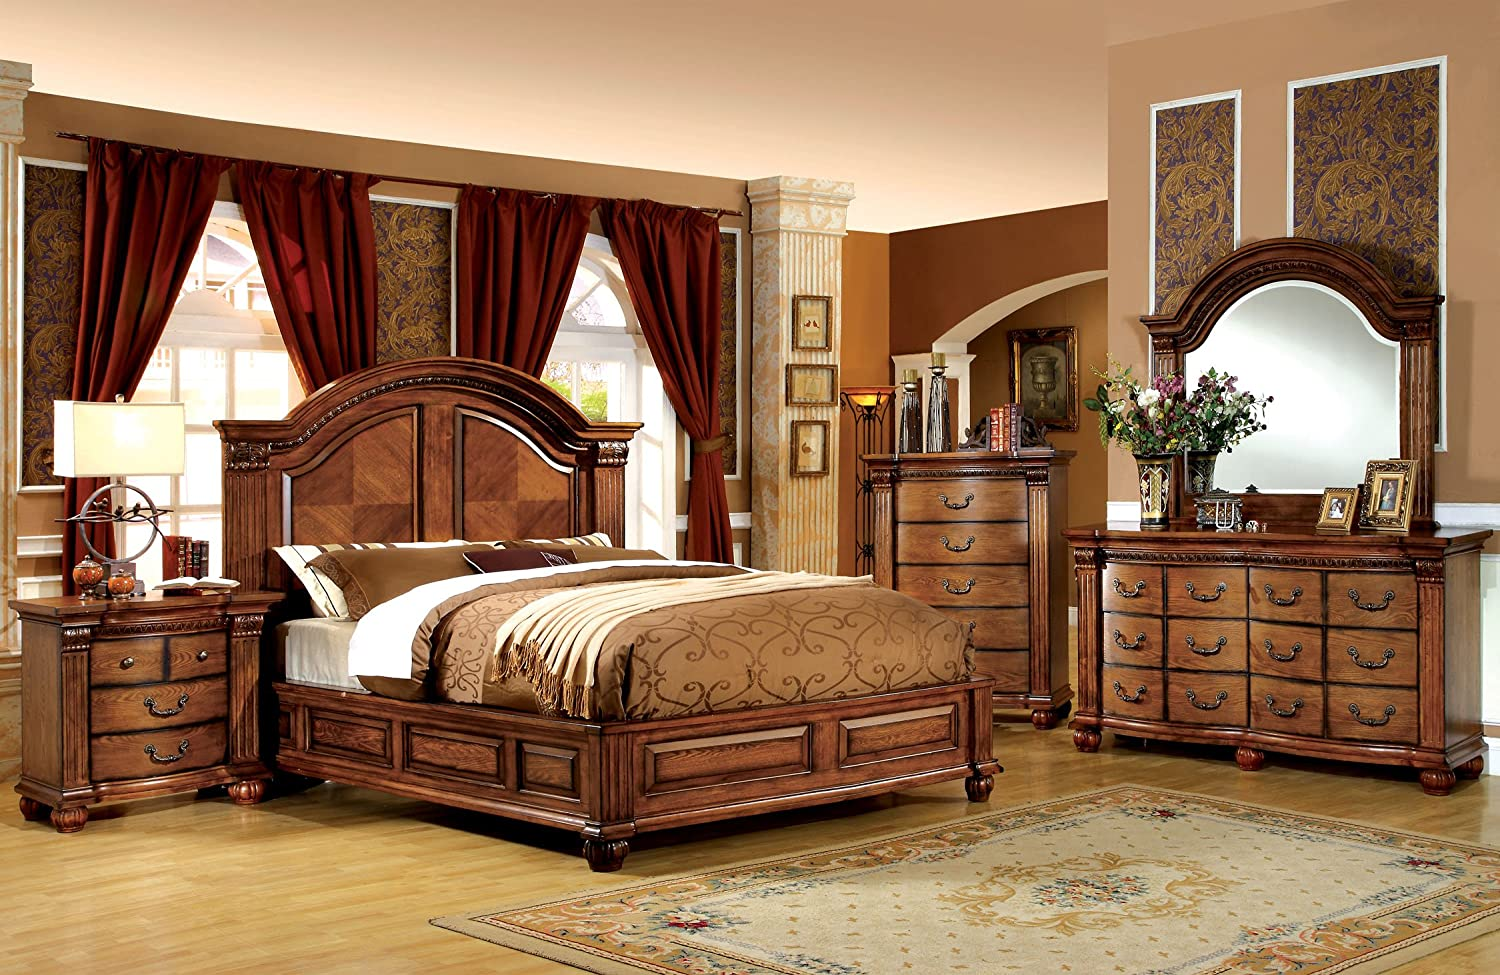 Amazon.com: Furniture Of America Lannister 3 Piece Elegant Bedroom Set With  2 Nightstands, Queen, Antique Tobacco Oak Finish: Kitchen U0026 Dining